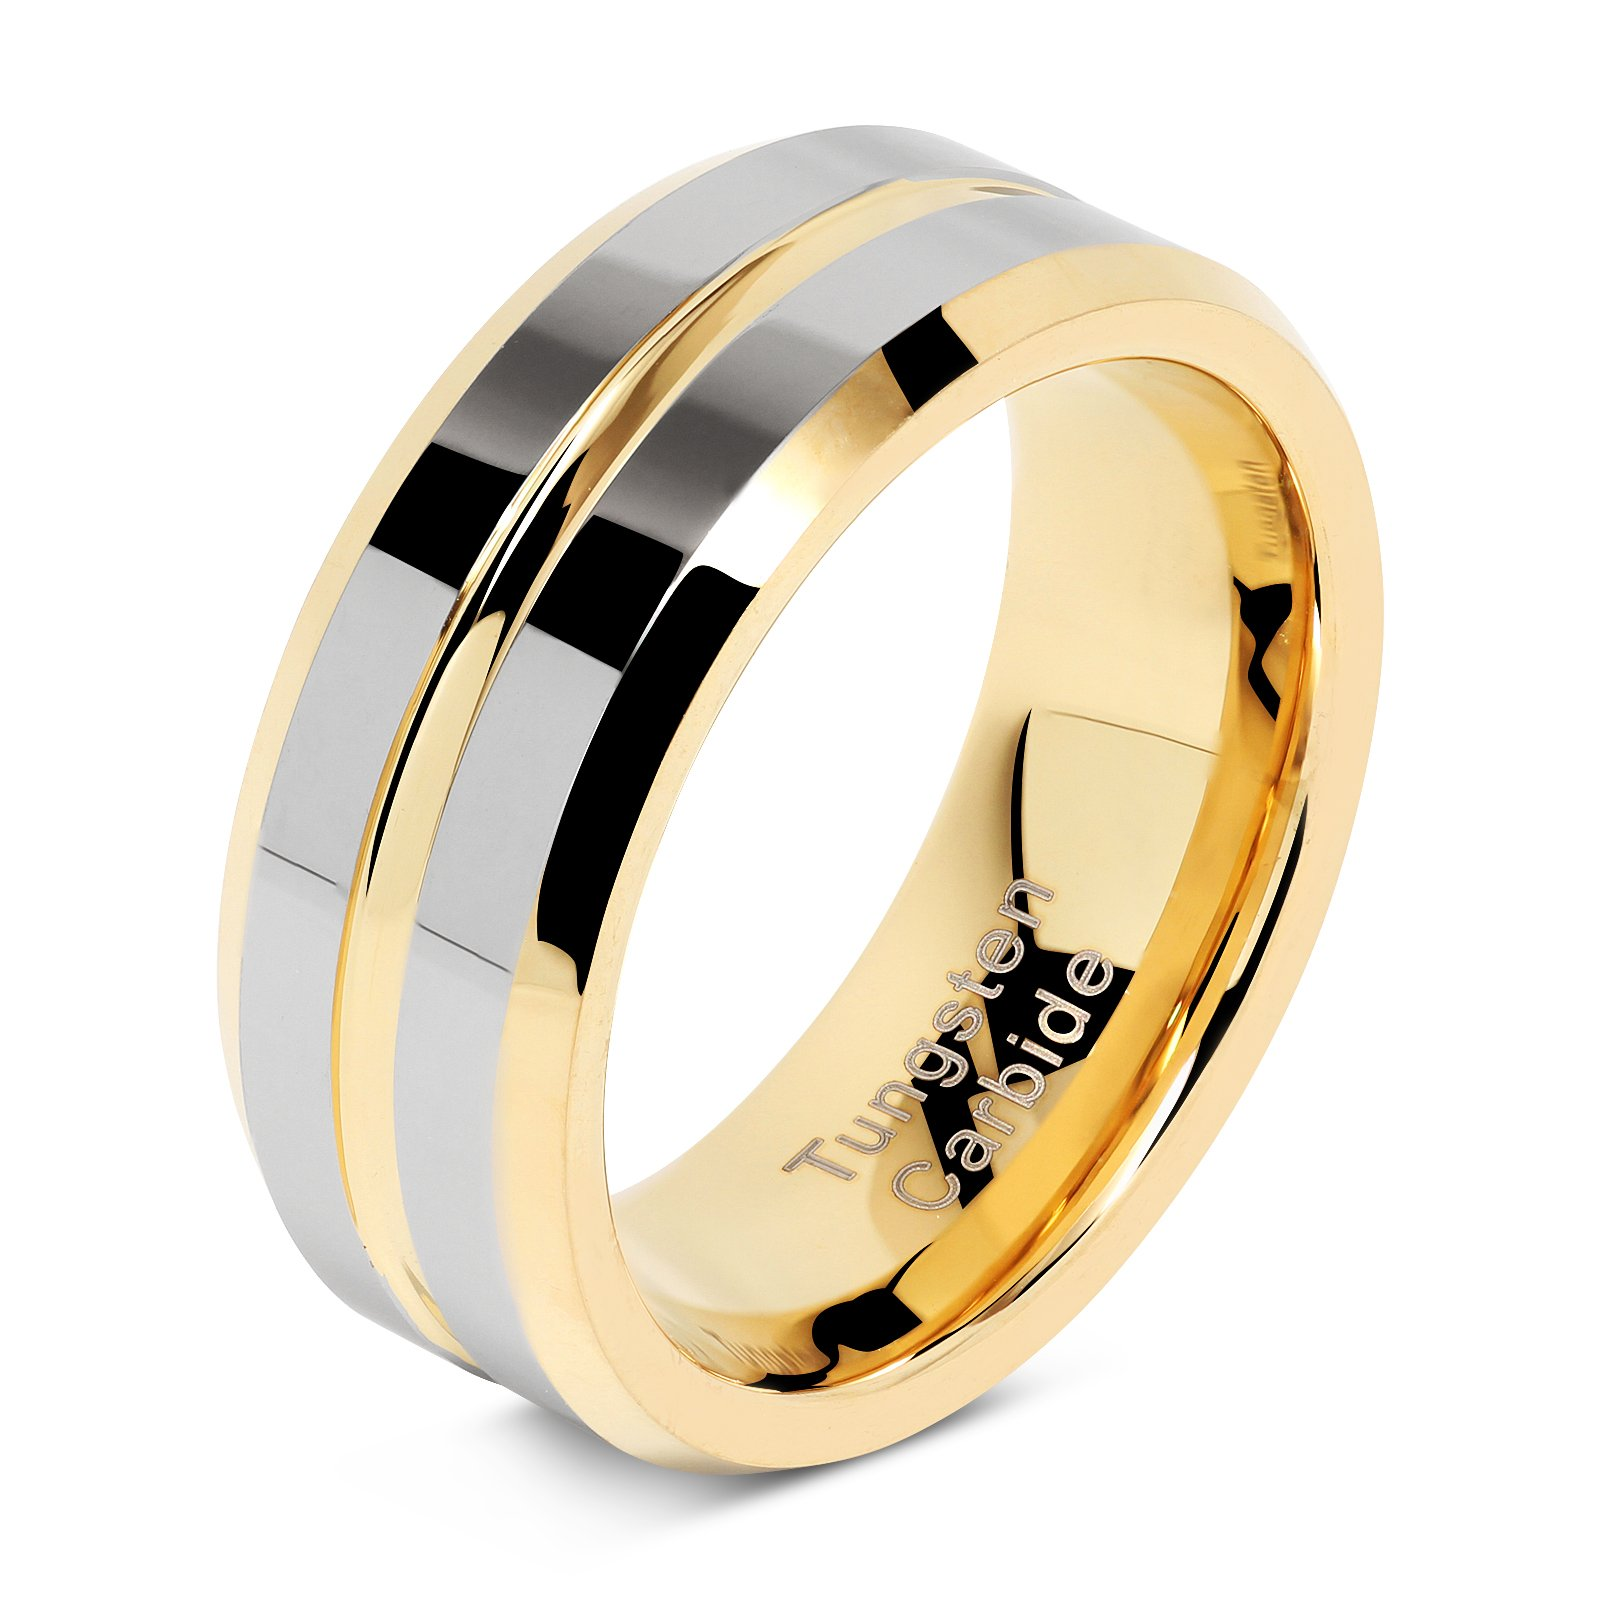 Tungsten Rings for Mens Wedding Bands Gold Silver Two Tone Grooved Center Line Size 8-15 (13) by 100S JEWELRY (Image #1)